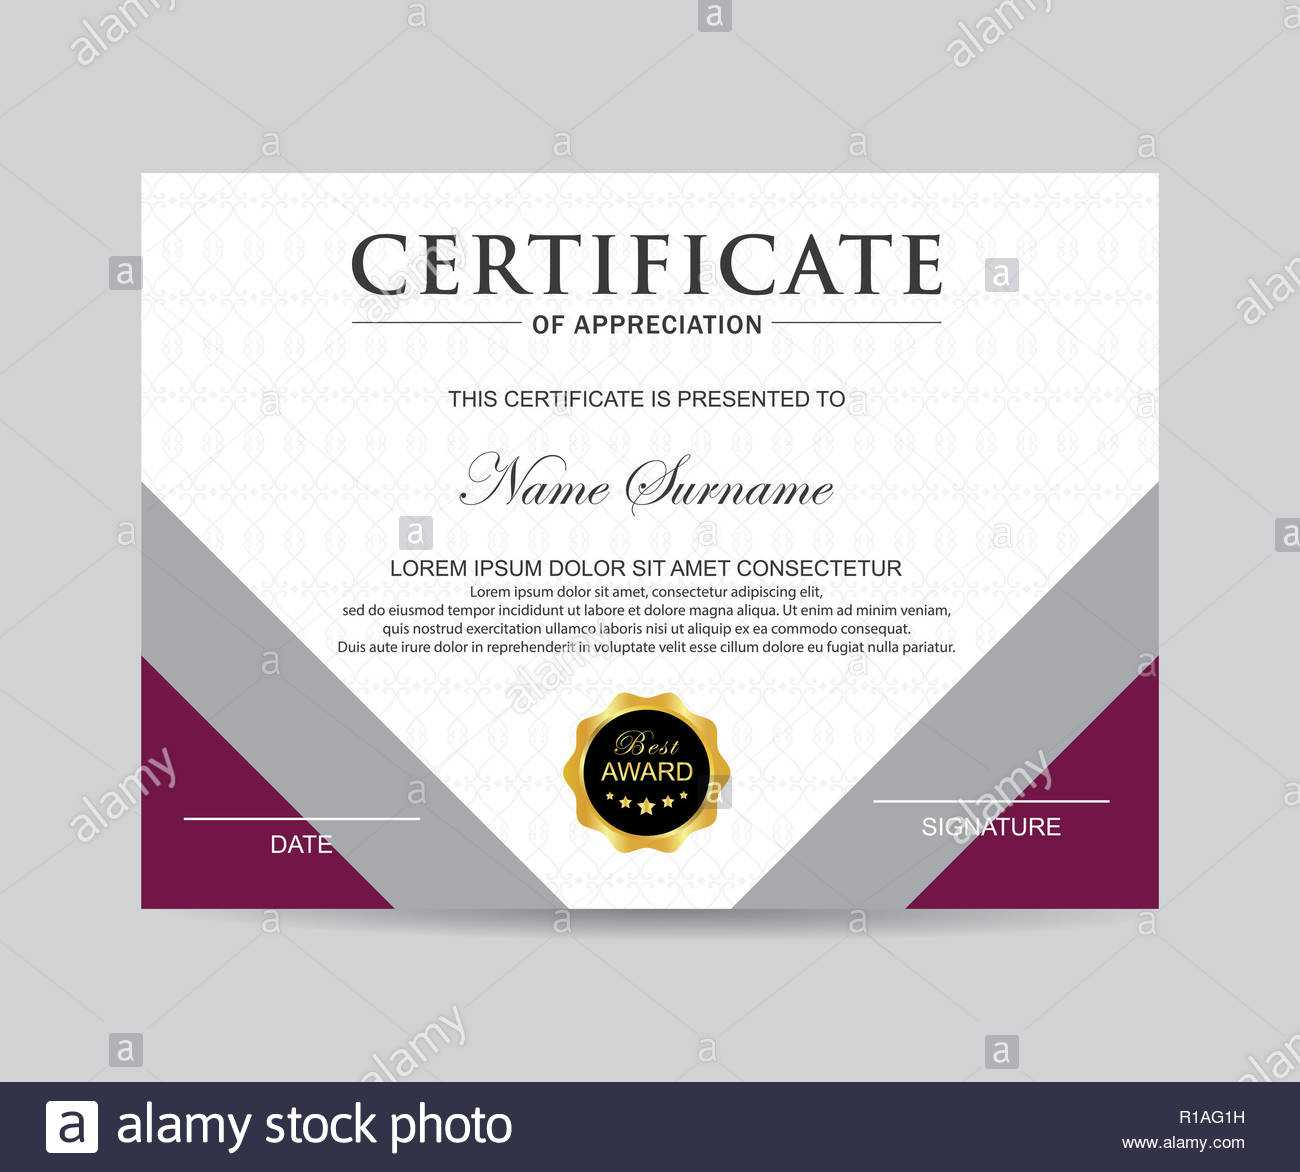 Modern Certificate Template And Background Stock Photo Throughout Borderless Certificate Templates